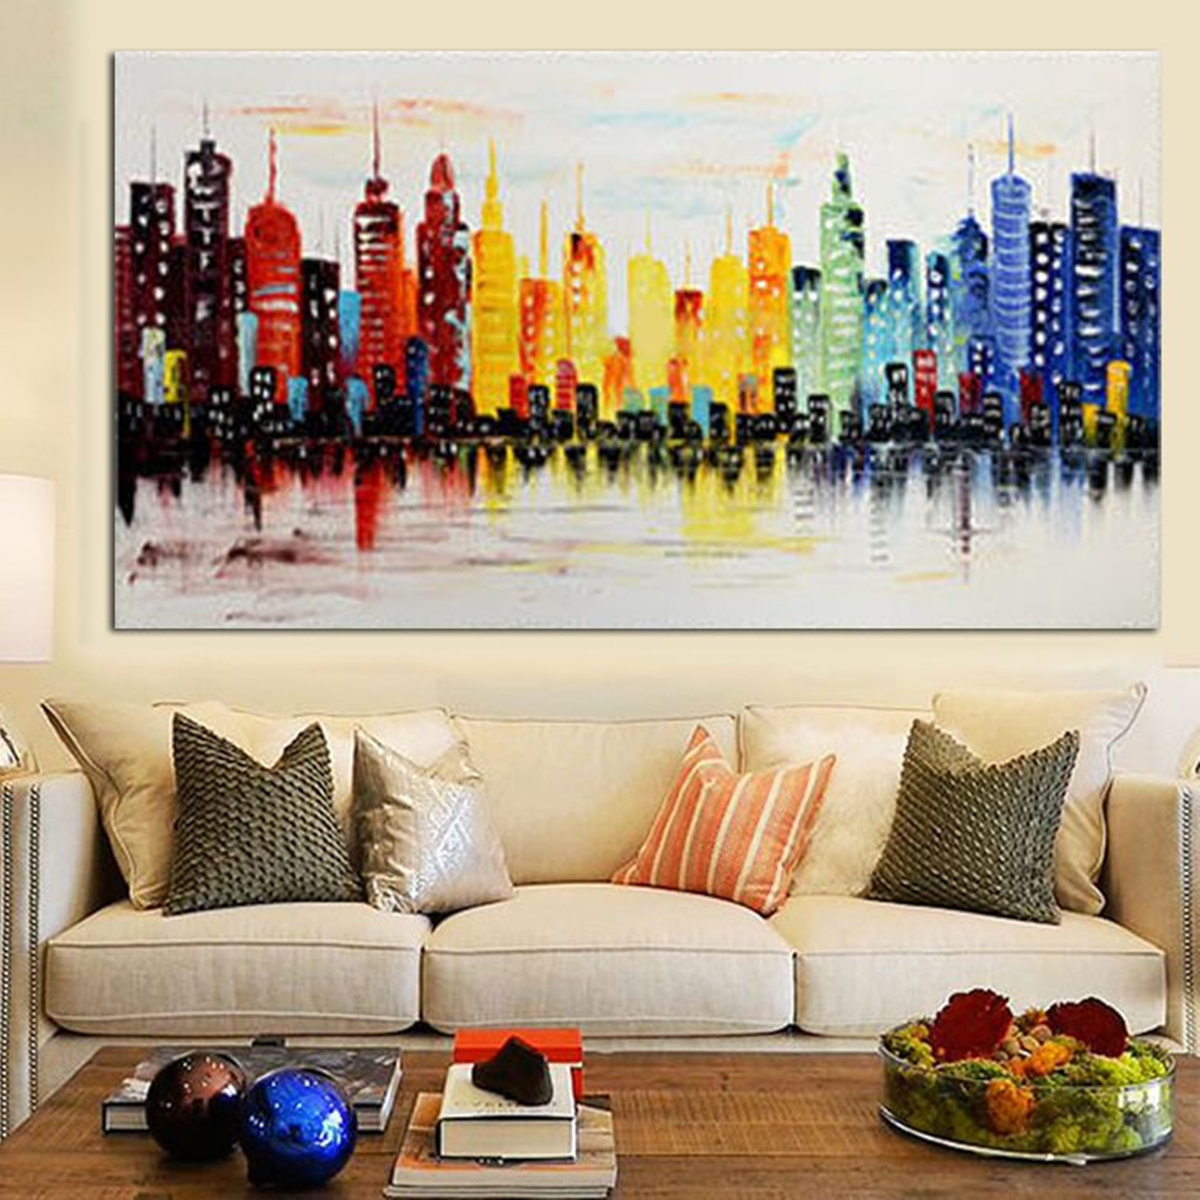 120x60cm Modern City Canvas Abstract Painting Print Living Room Art Wall Decor No Frame At Banggood